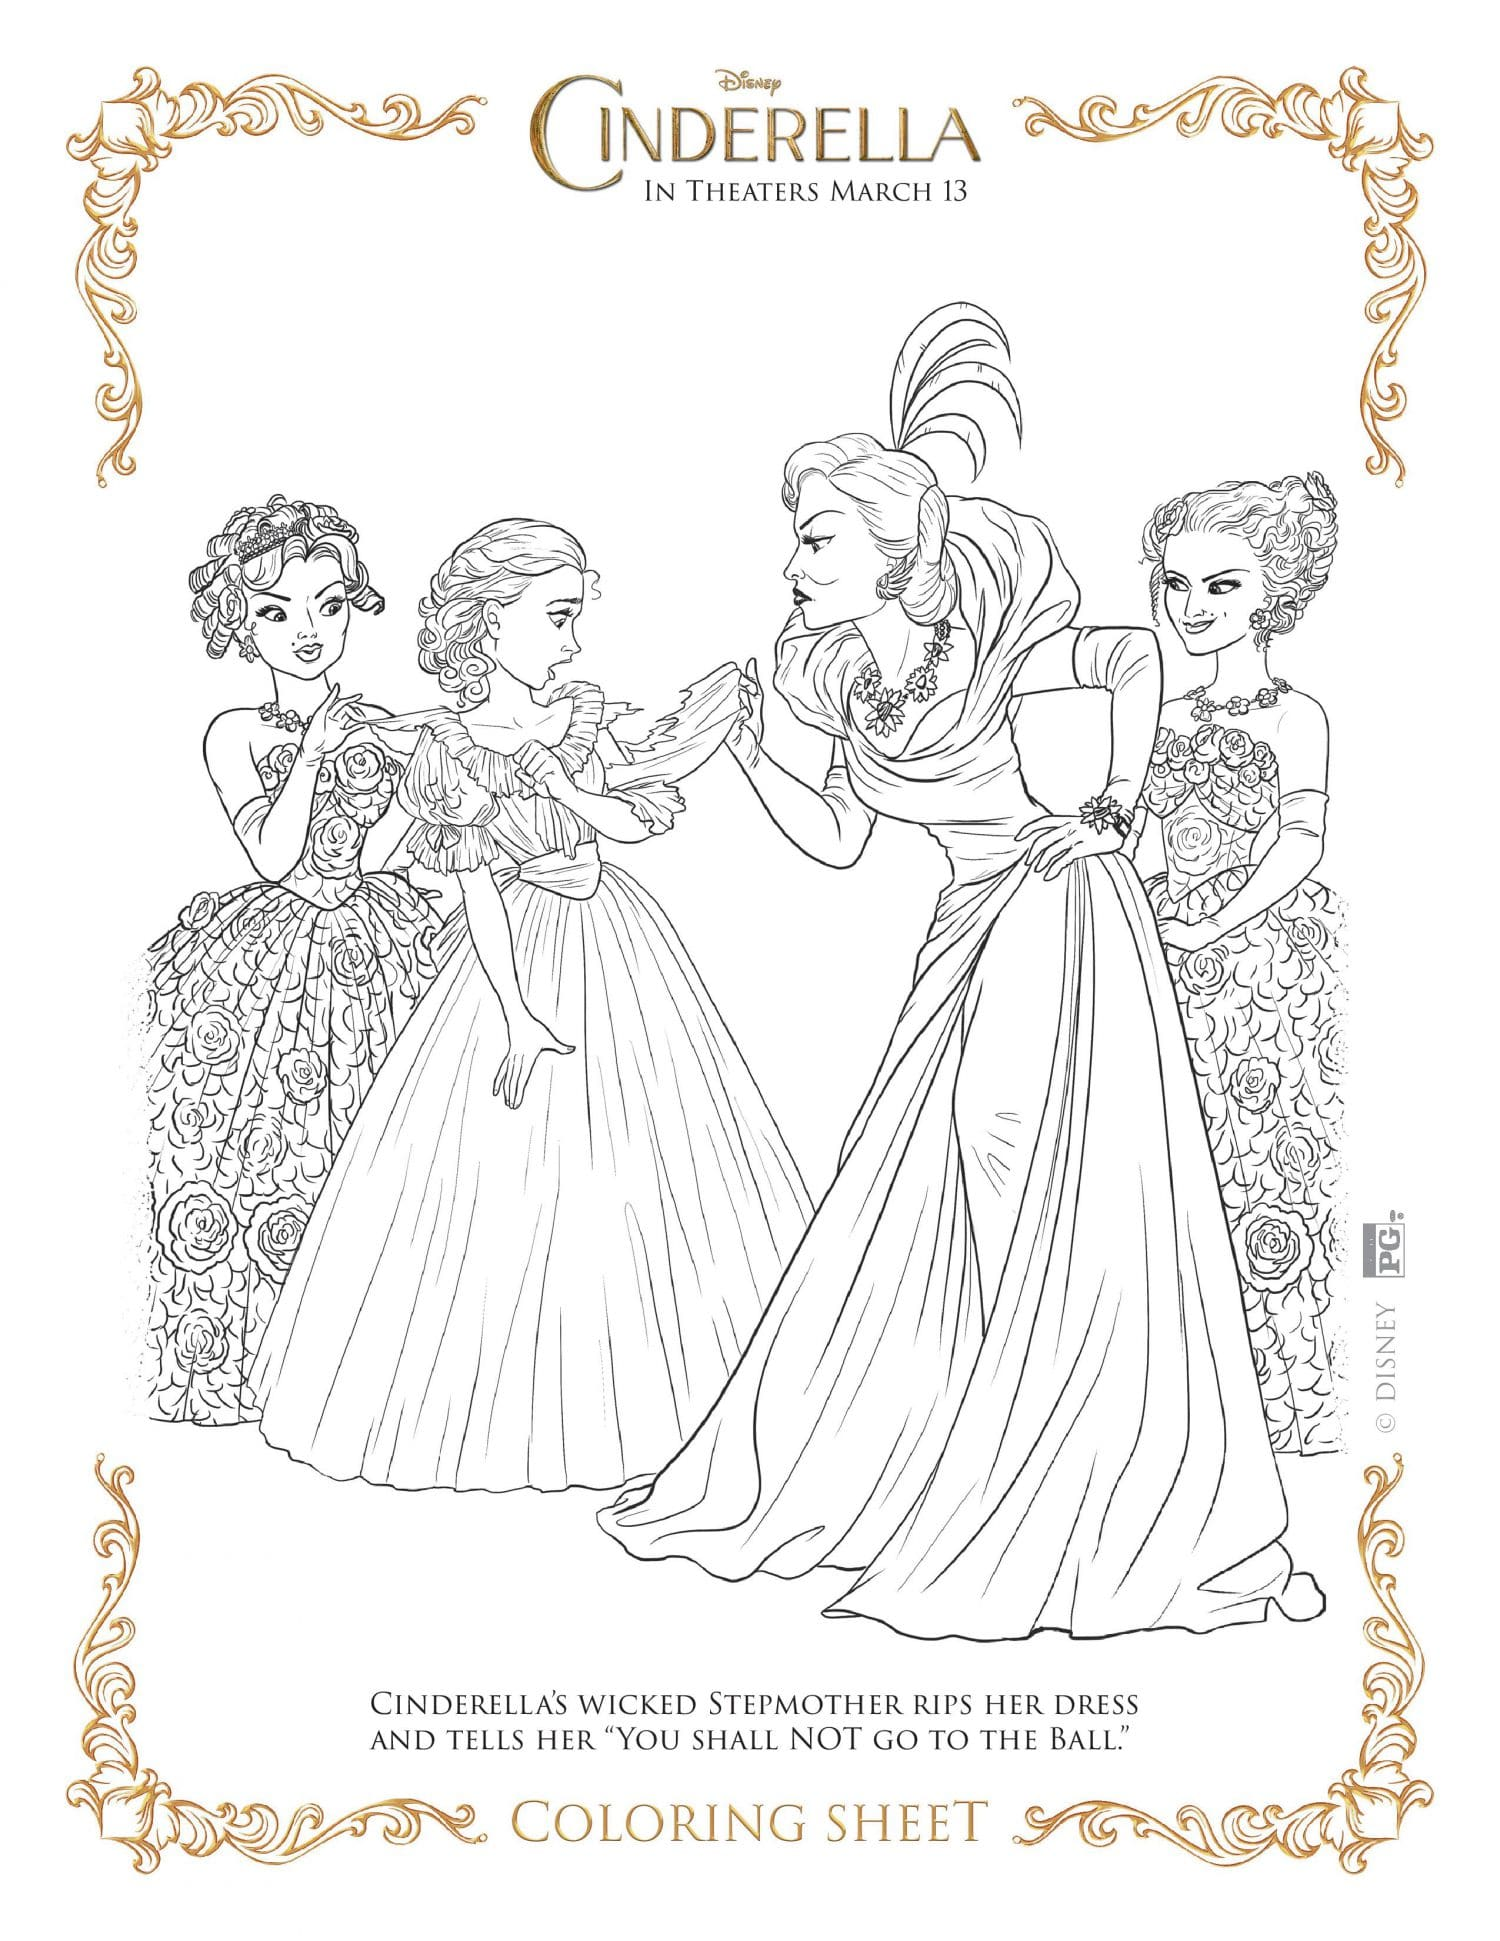 T ball coloring pages - Cinderella Coloring Page Wicked Stepmother Cinderella Coloring Page Wicked Stepmother